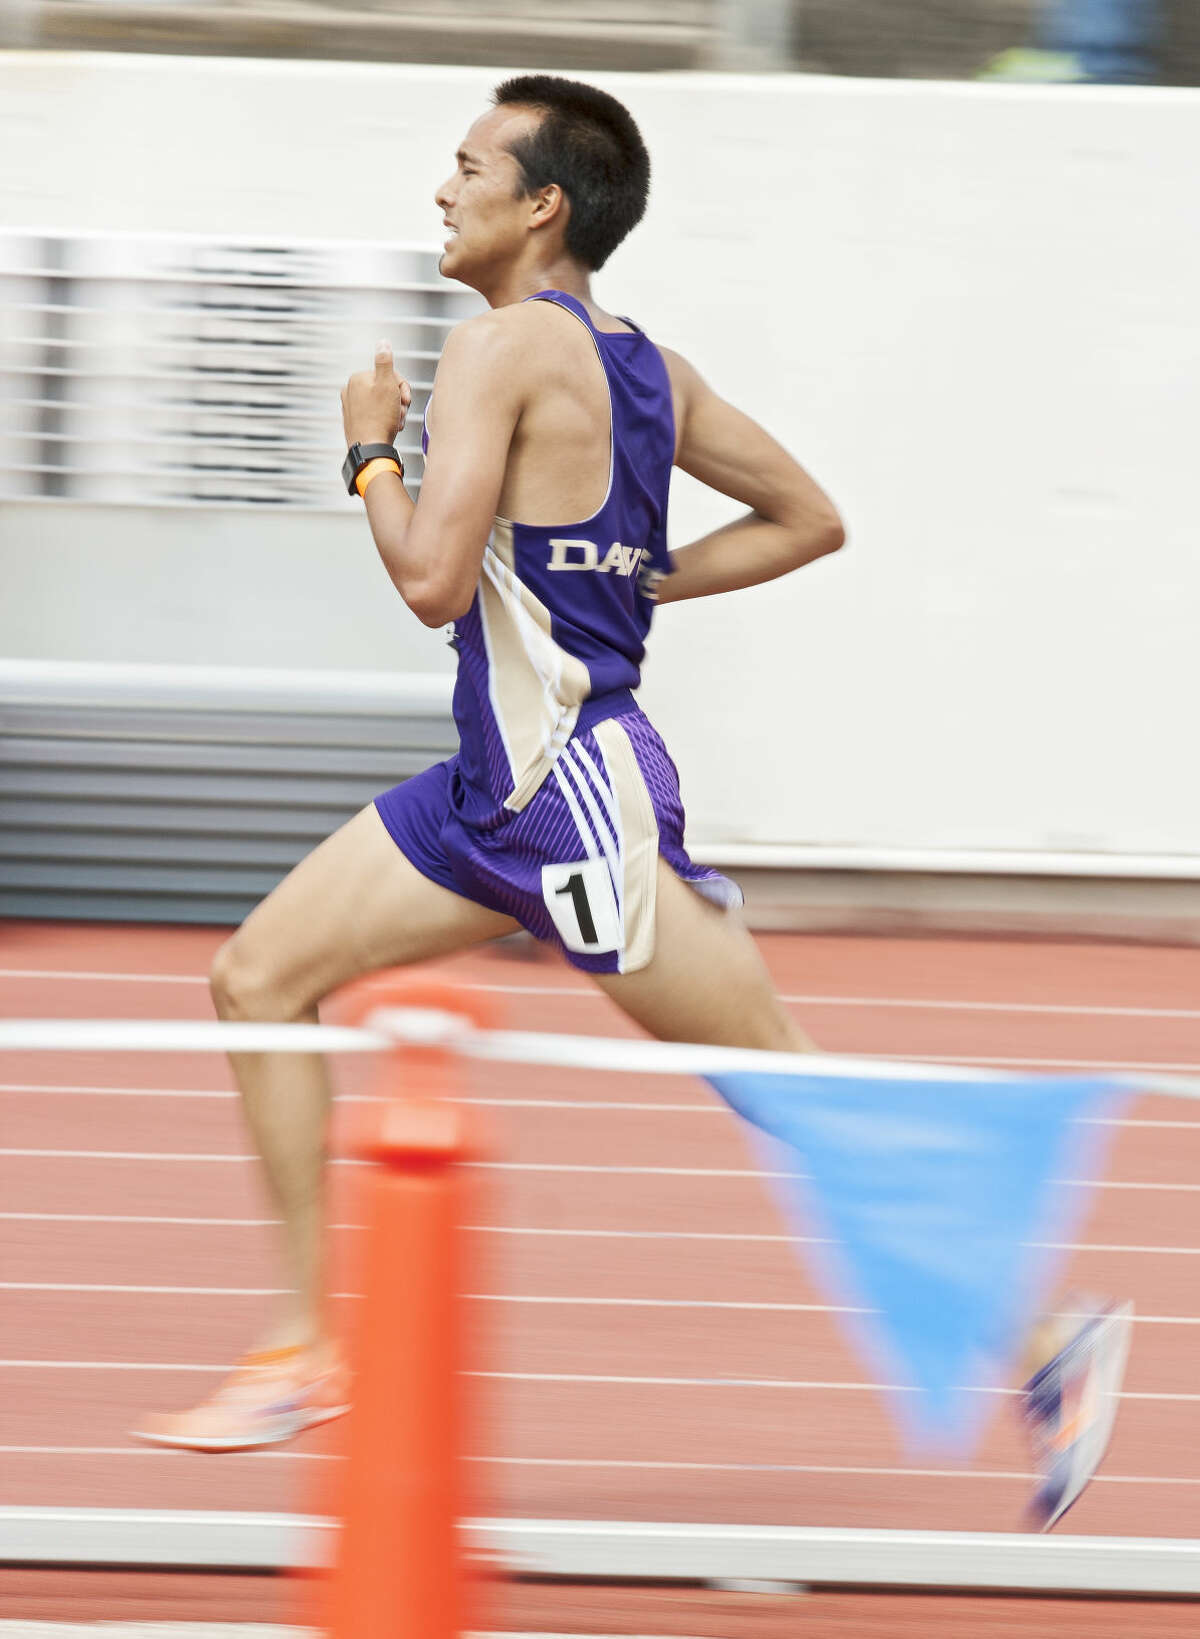 Midland junior Ruben Guerra runs along the track in the 3200M run during the UIL Region I-6A Track and Field Championship on Friday at Maverick Stadium in Arlington.